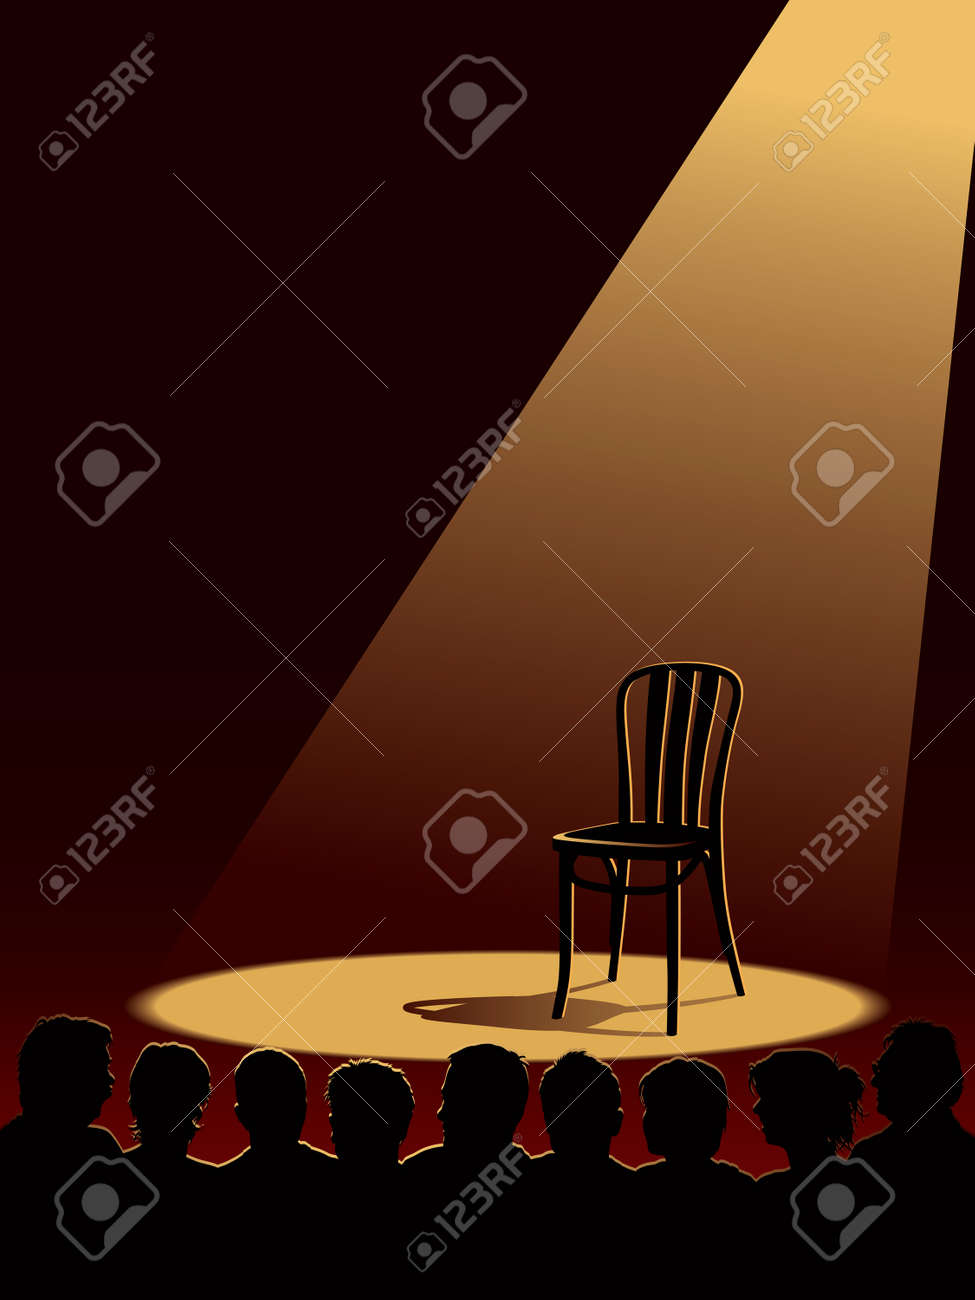 People are waiting for an actor, one empty chair on a stage. Stock Vector - 7000105